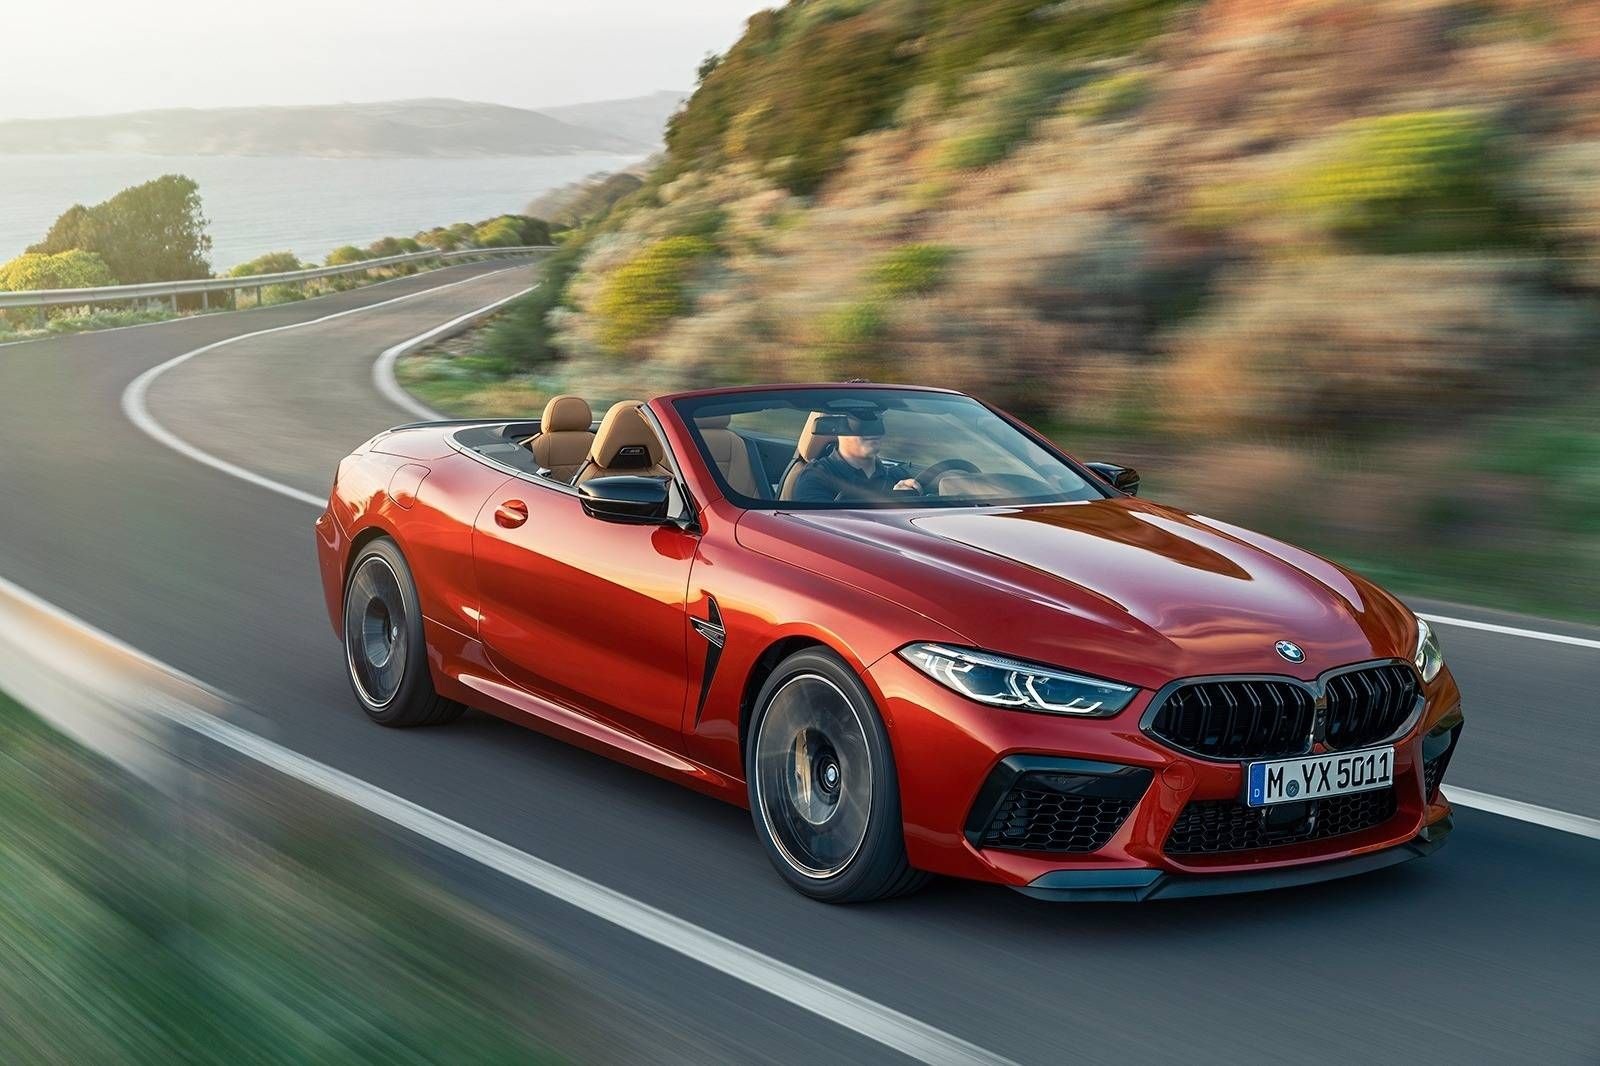 2020 Bmw M8 And M8 Competition First Look With Images Bmw Bmw